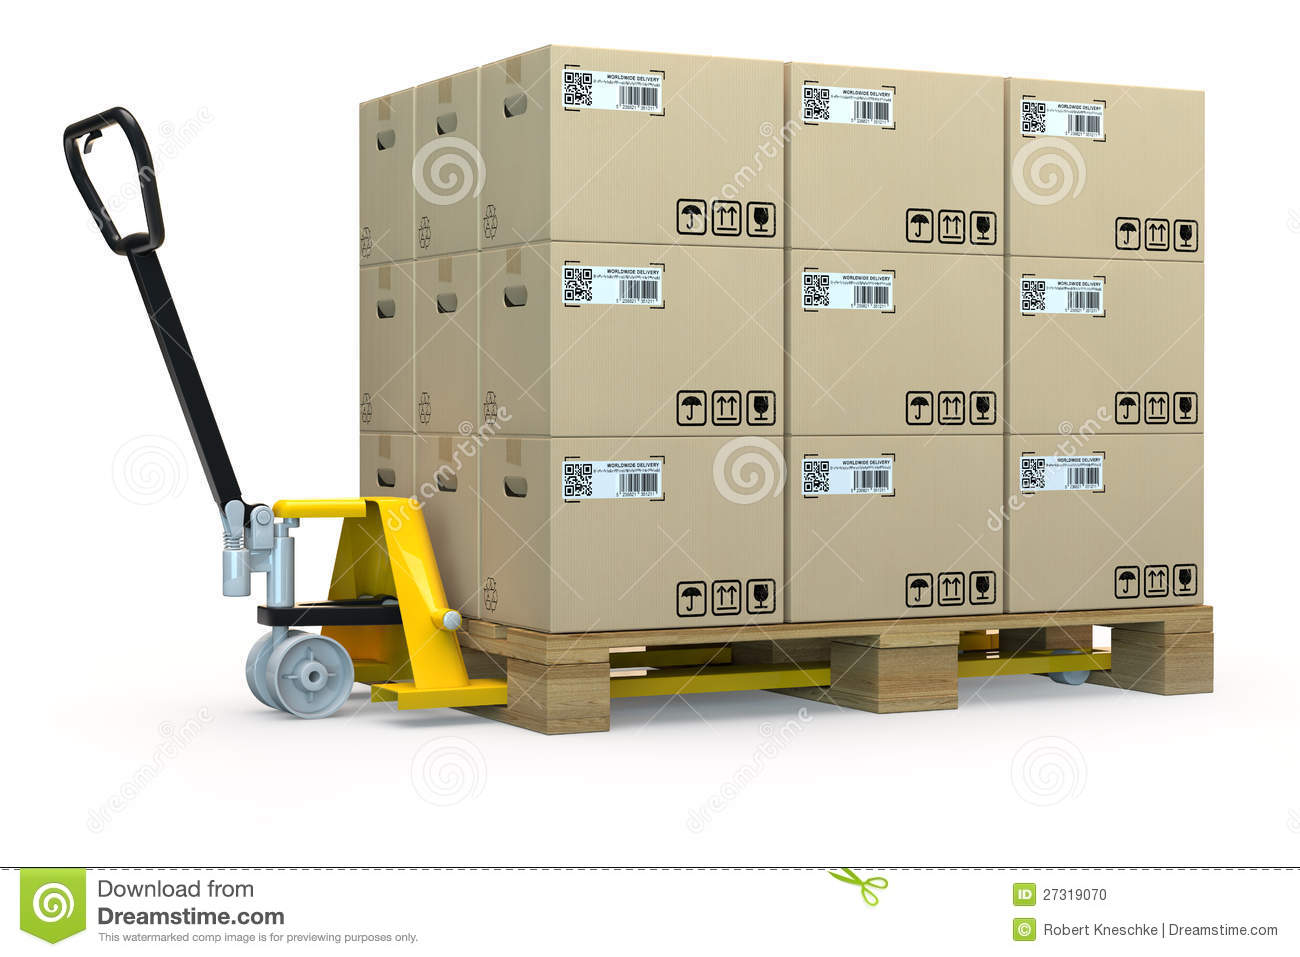 Hand Pallet Truck With Many Boxes Stock Photo - Image: 27319070 Vacuum Clipart